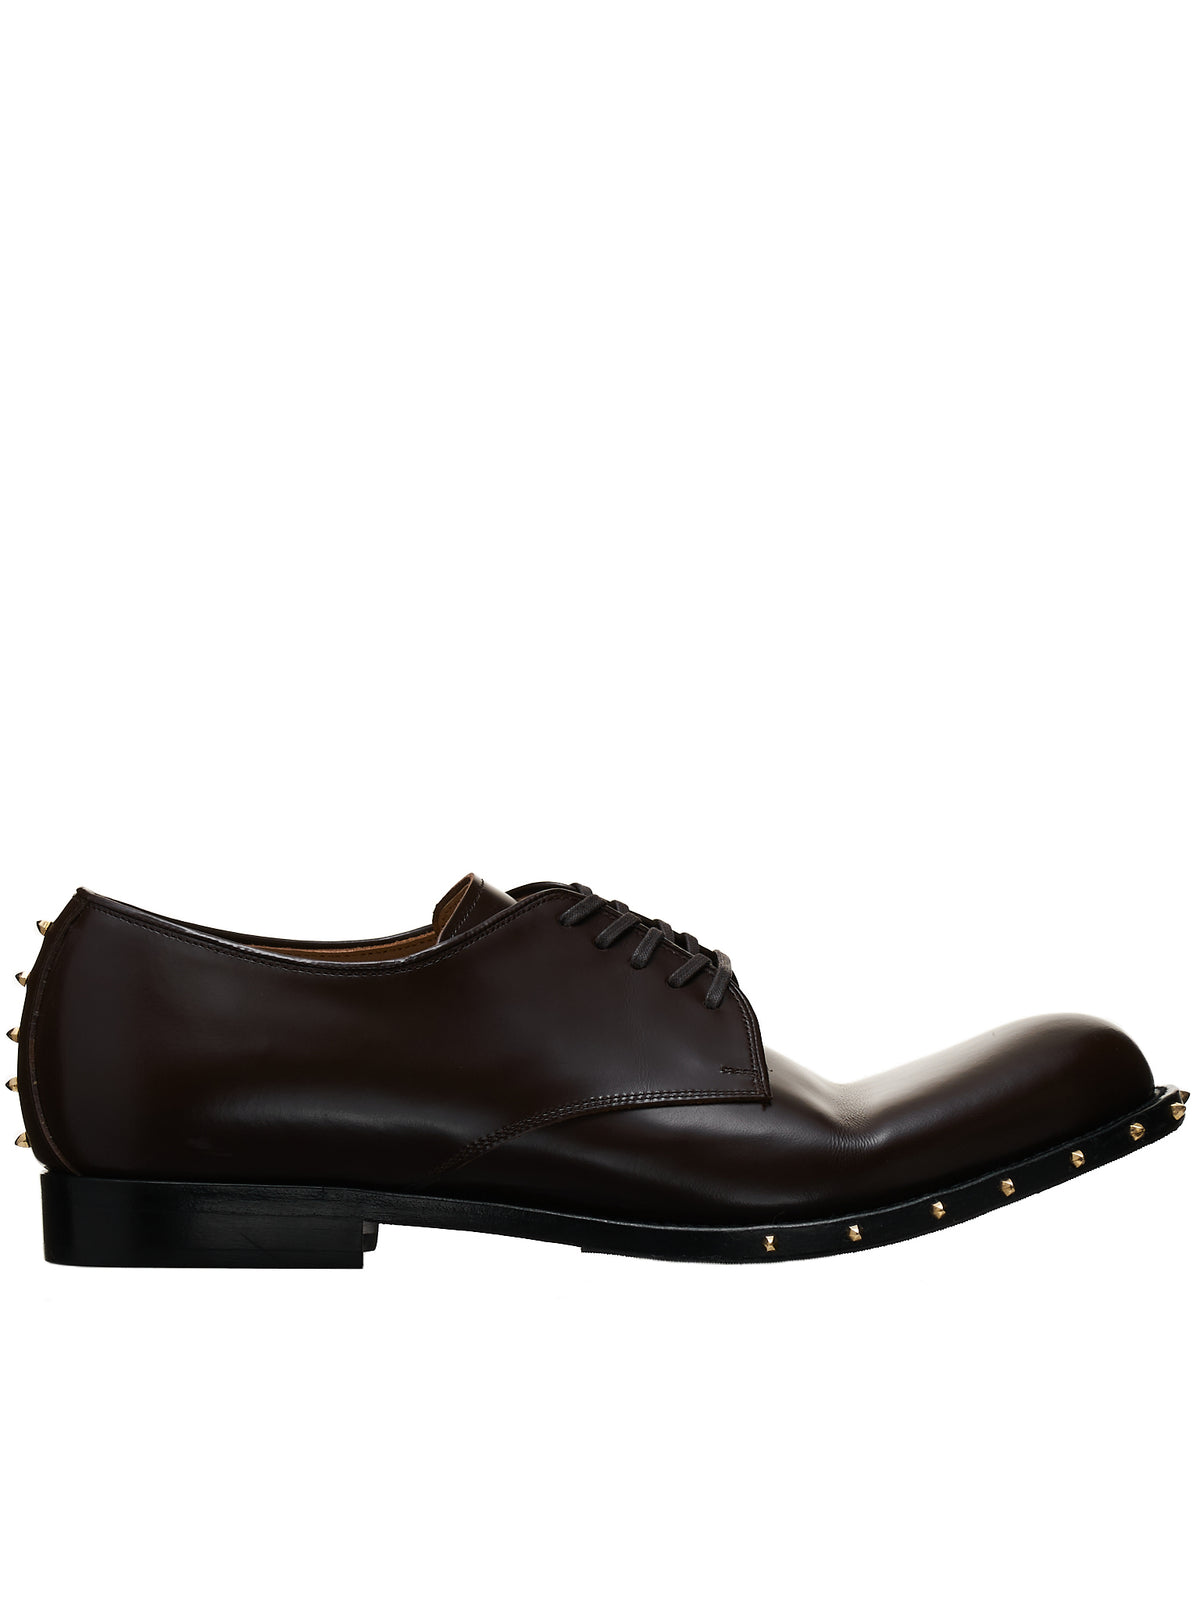 Spiked Oxford (UC1A4F01-DARK-BROWN)